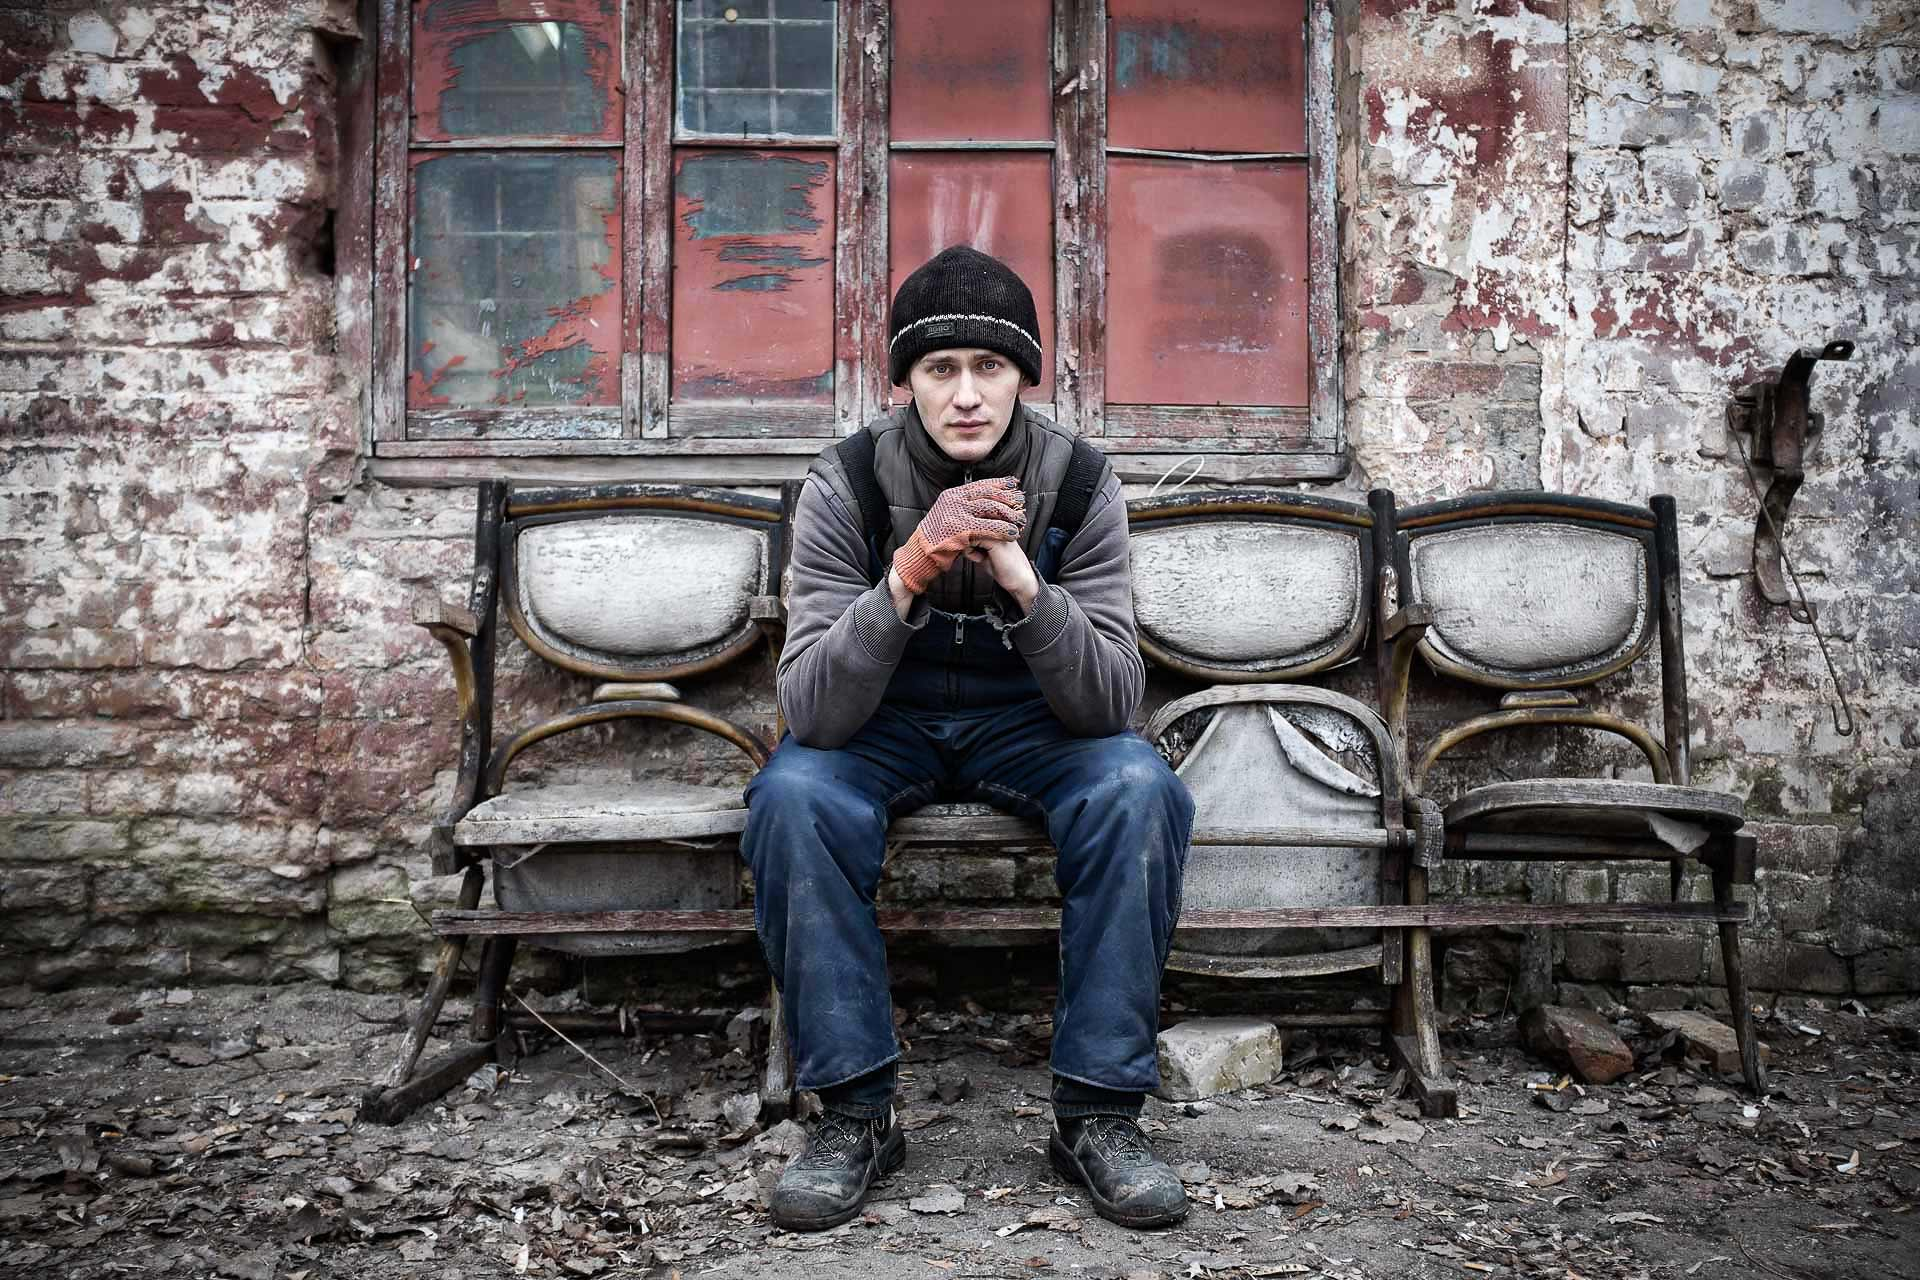 Alexander, 31, works in a wallpaper factory in Slaviansk. He remembers the three months of DNR secessionists' occupation from May to July 2014, and recalls their violent behaviors. Slaviansk - UKRAINE